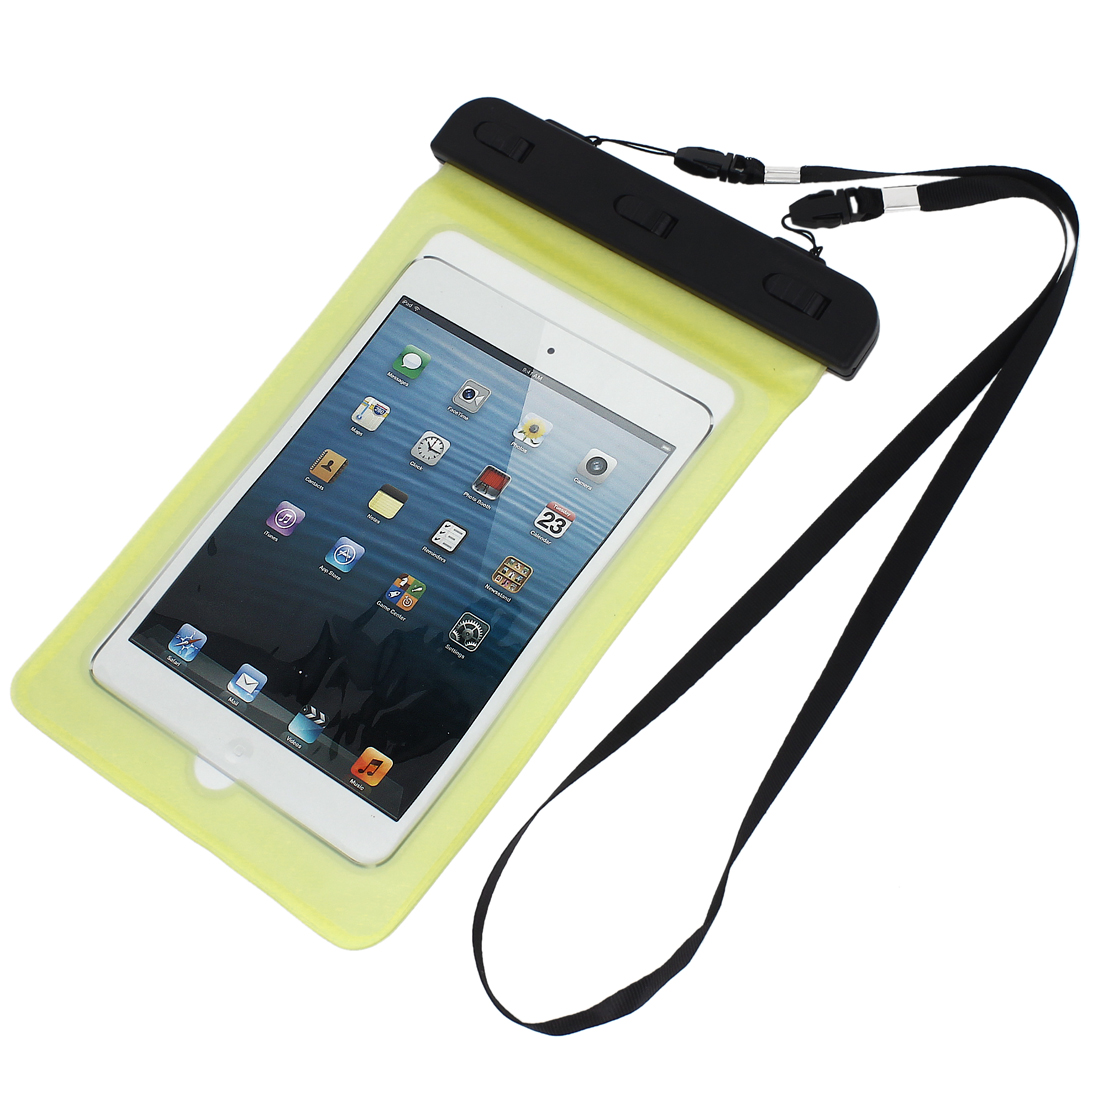 Waterproof Bag Case Holder Pouch Yellow for iPad mini2/3 w Neck Strap